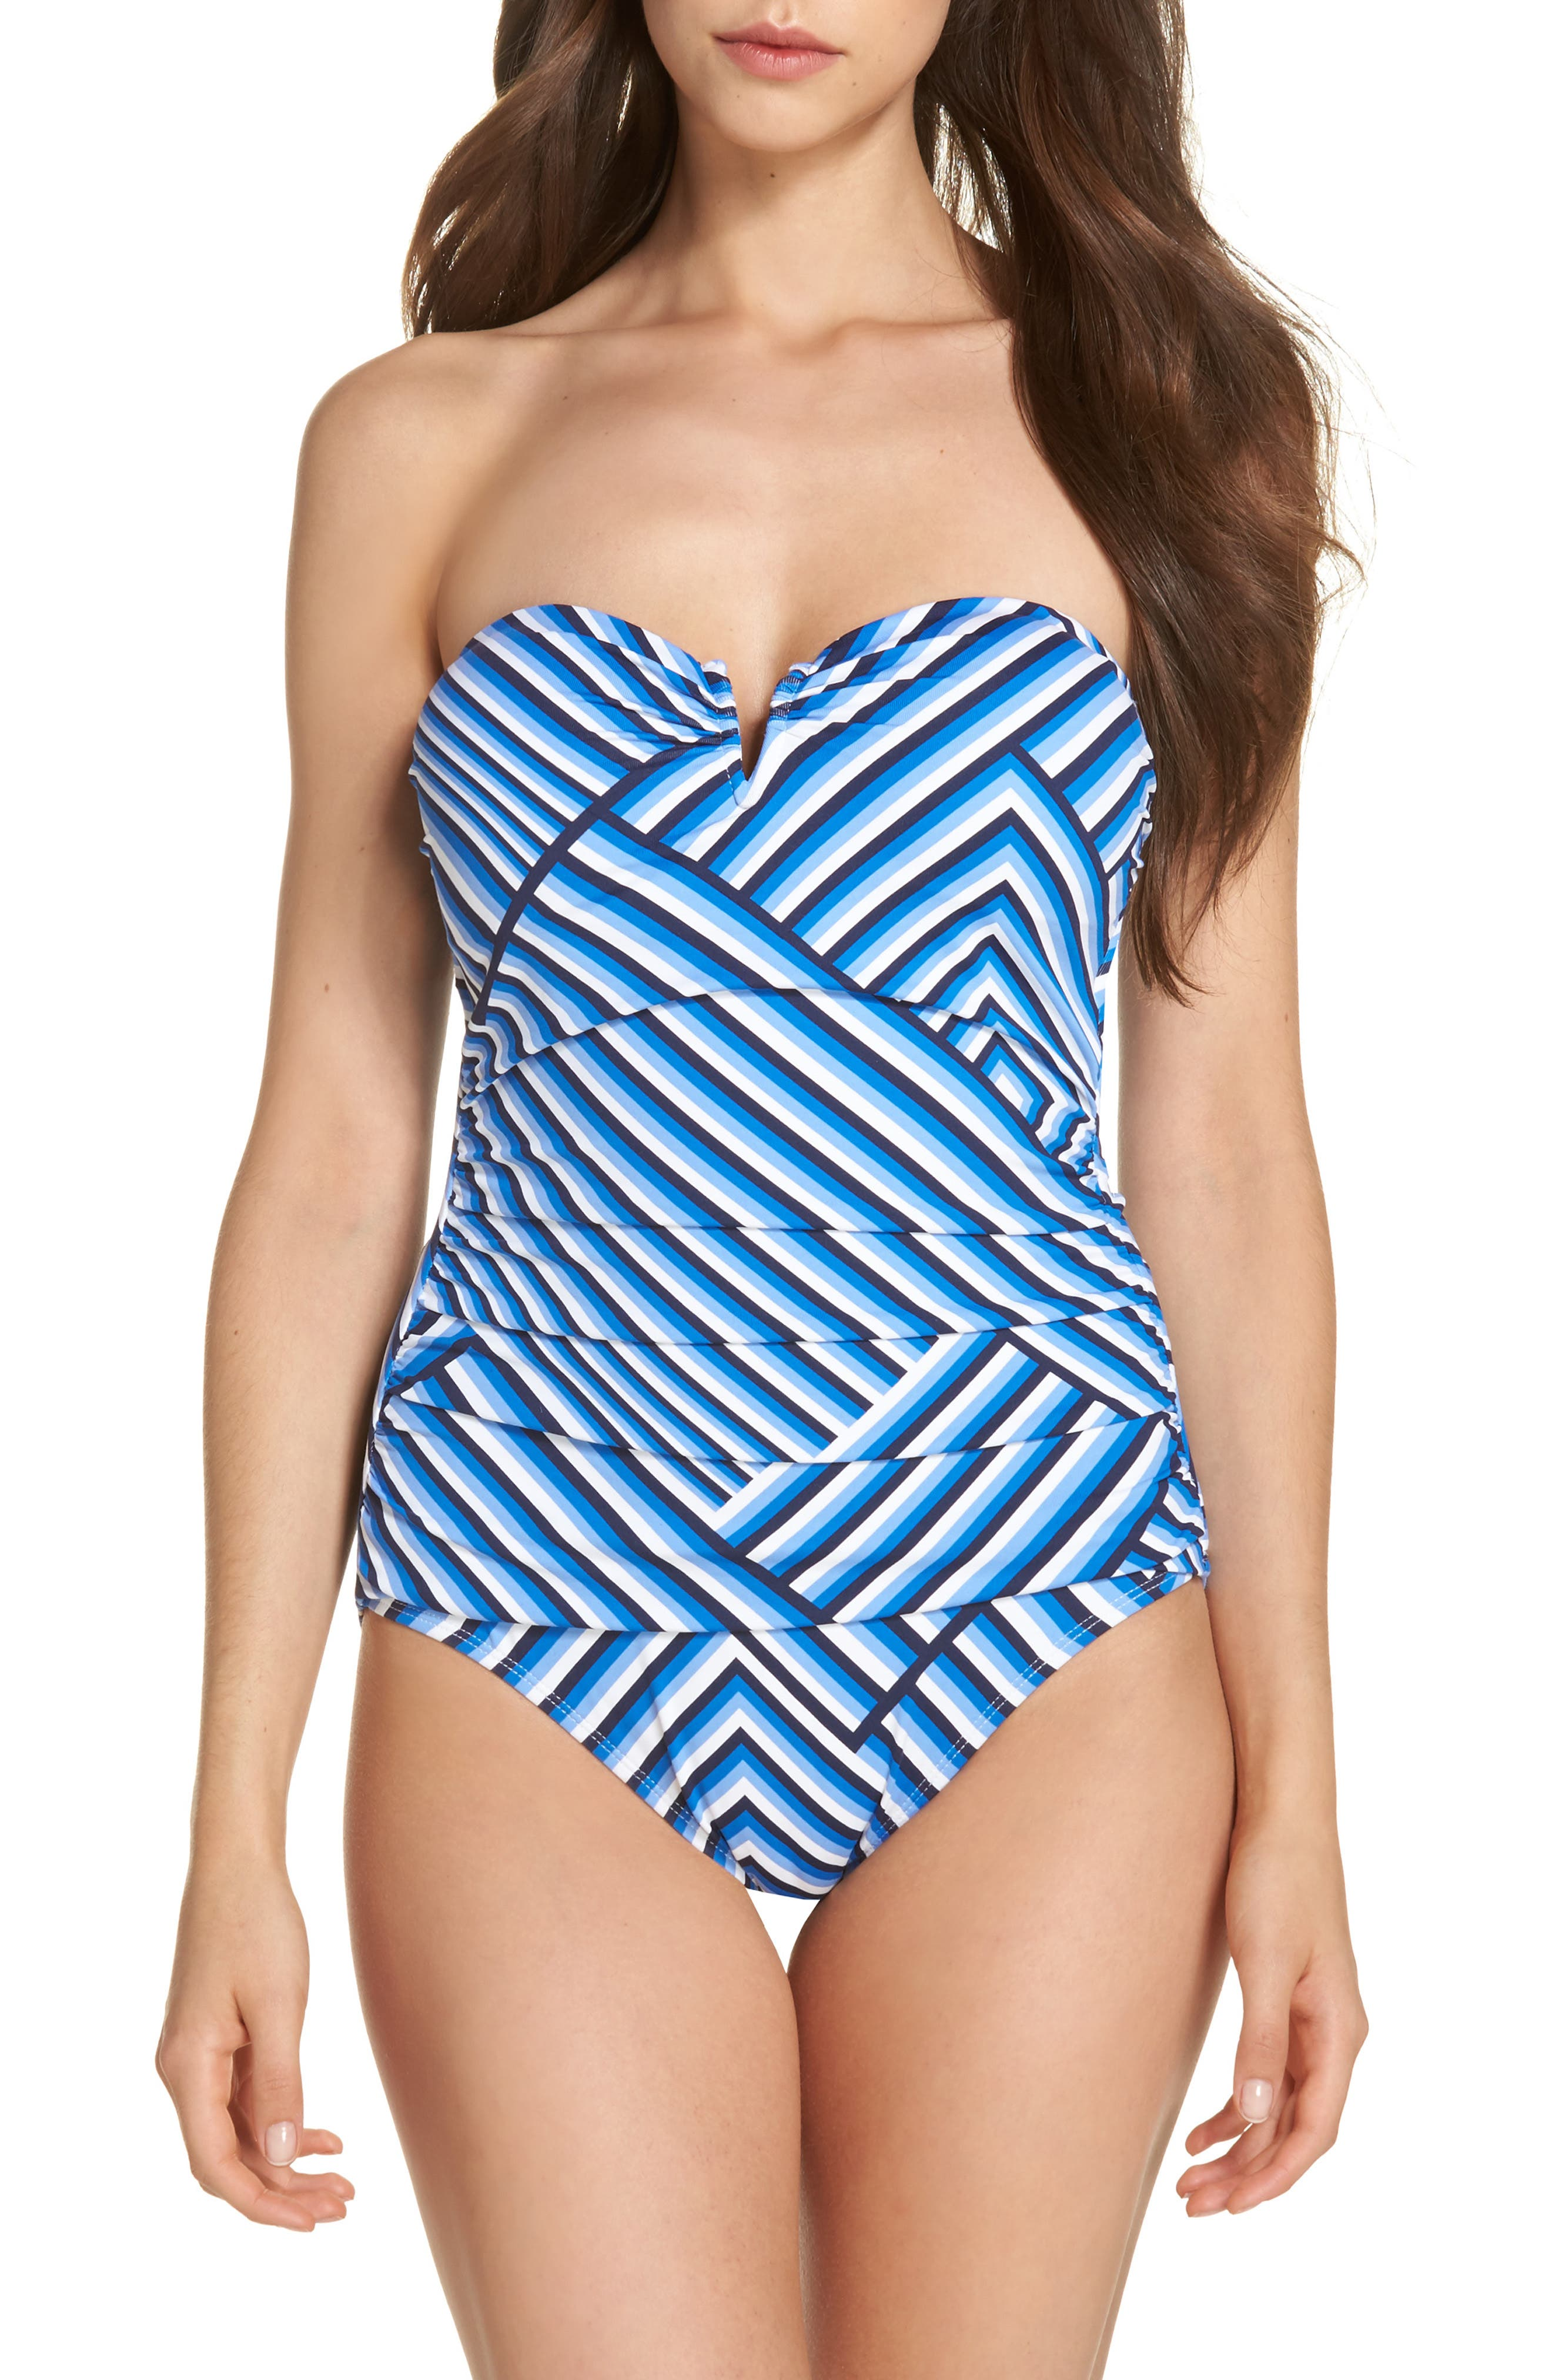 Fuller Fronds Strapless One-Piece Swimsuit,                         Main,                         color, 100